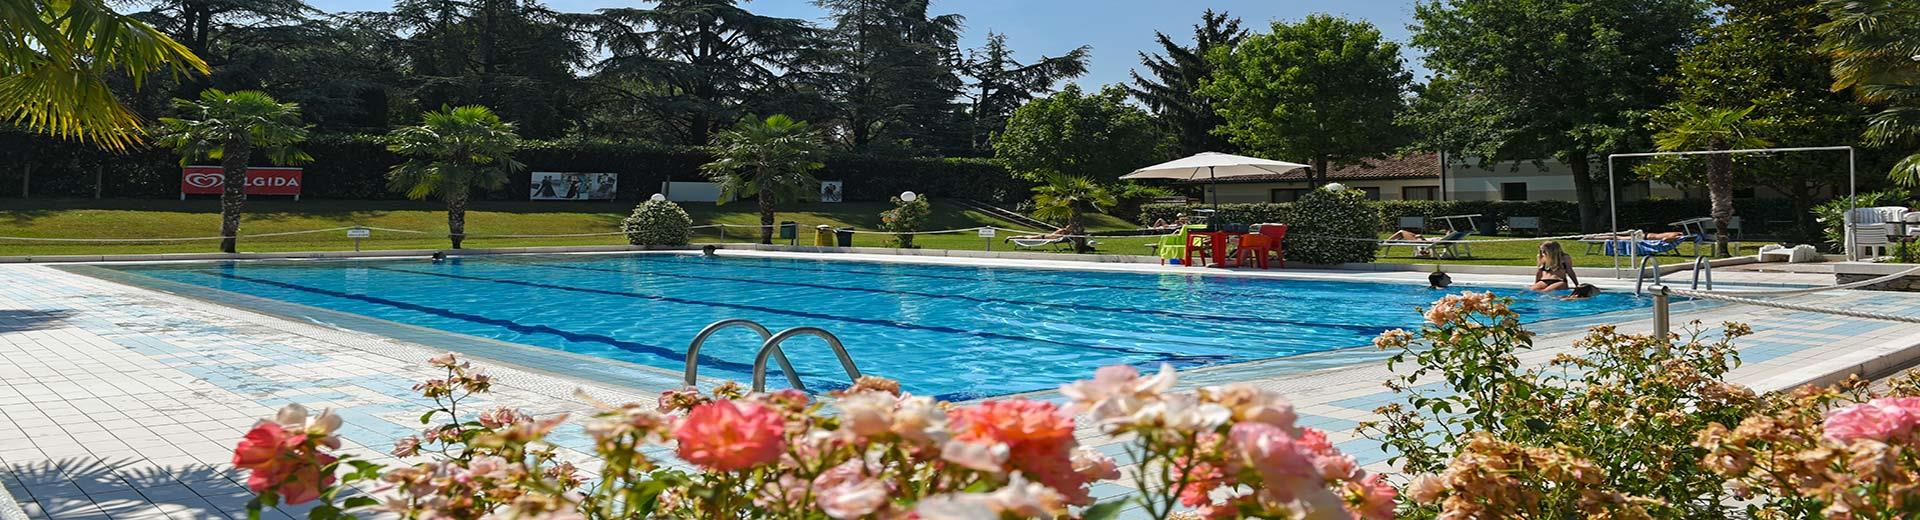 The hotel guests can use the outdoor pools Green Club for free